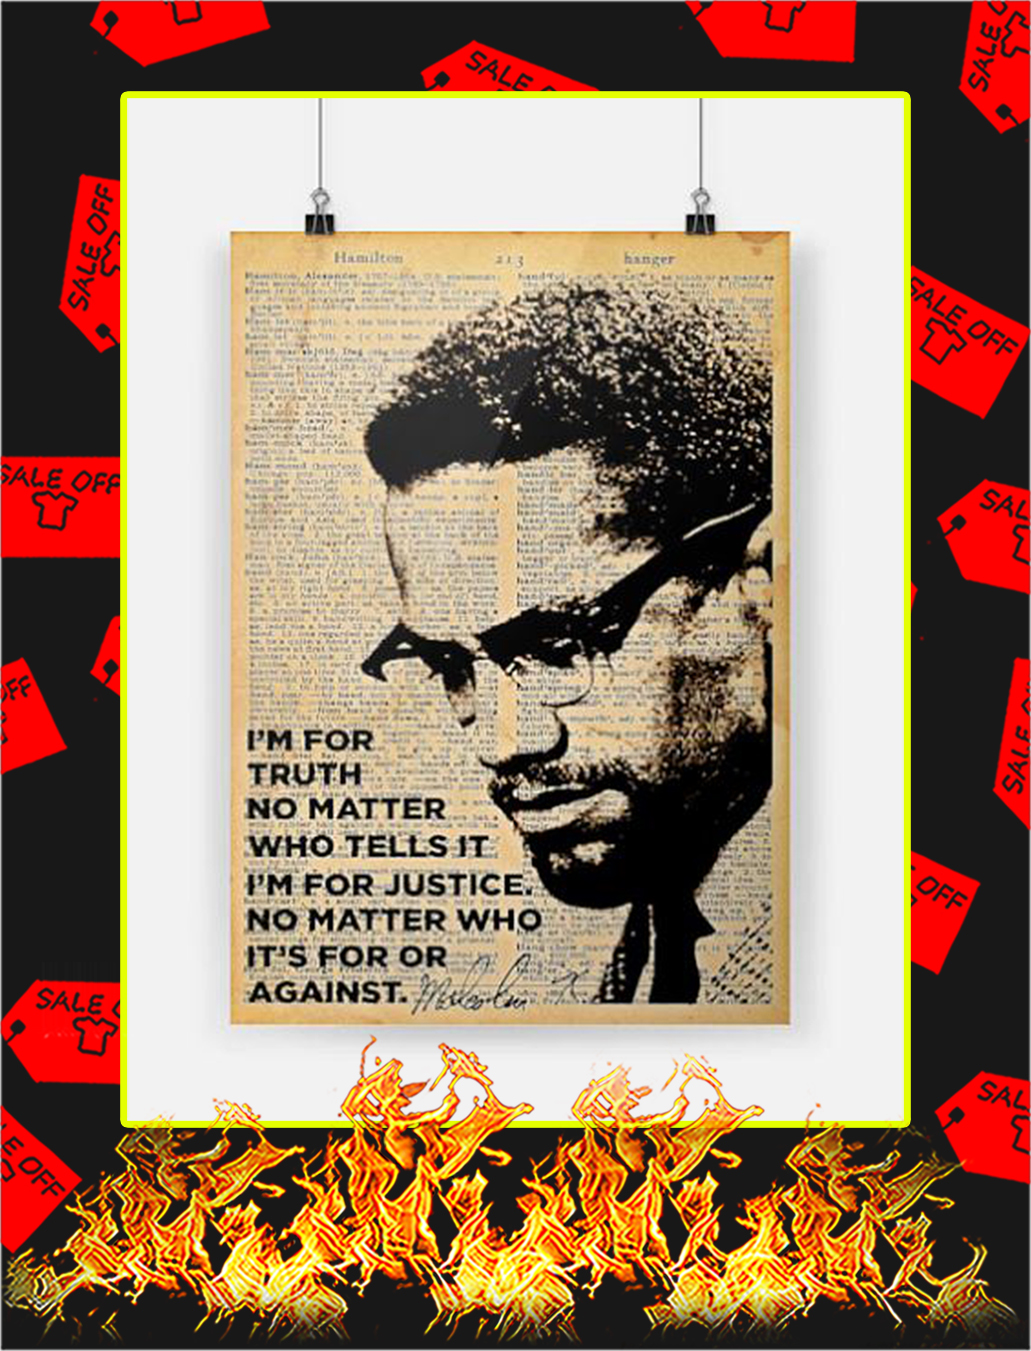 Malcolm x I'm for truth no matter who tells it poster - A1